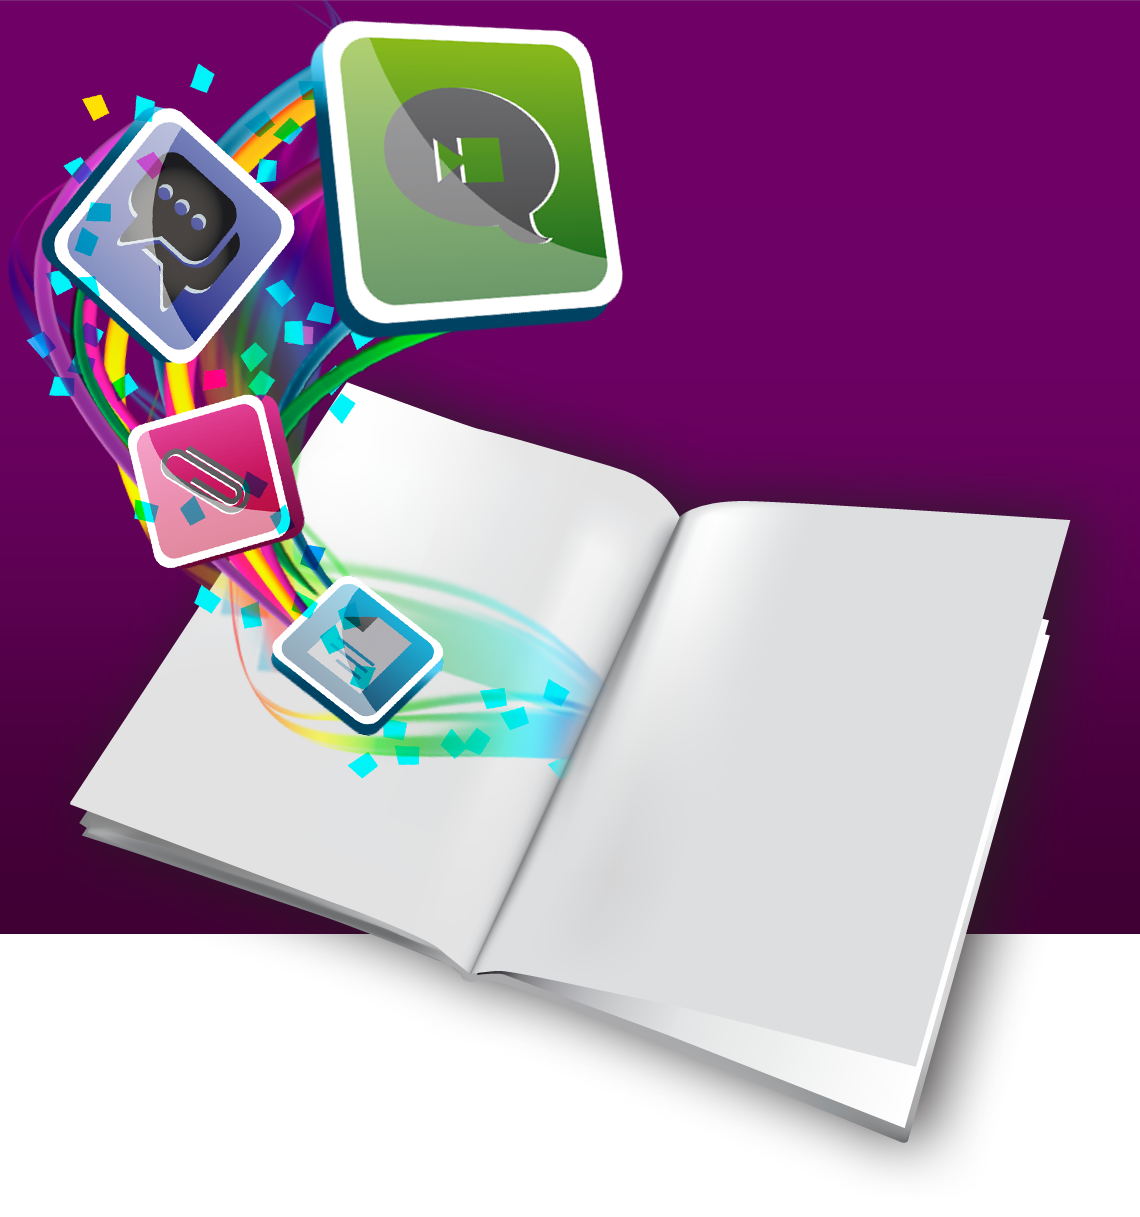 magic book, libros digitales para eventos,libros proyectados en paredes para eventos